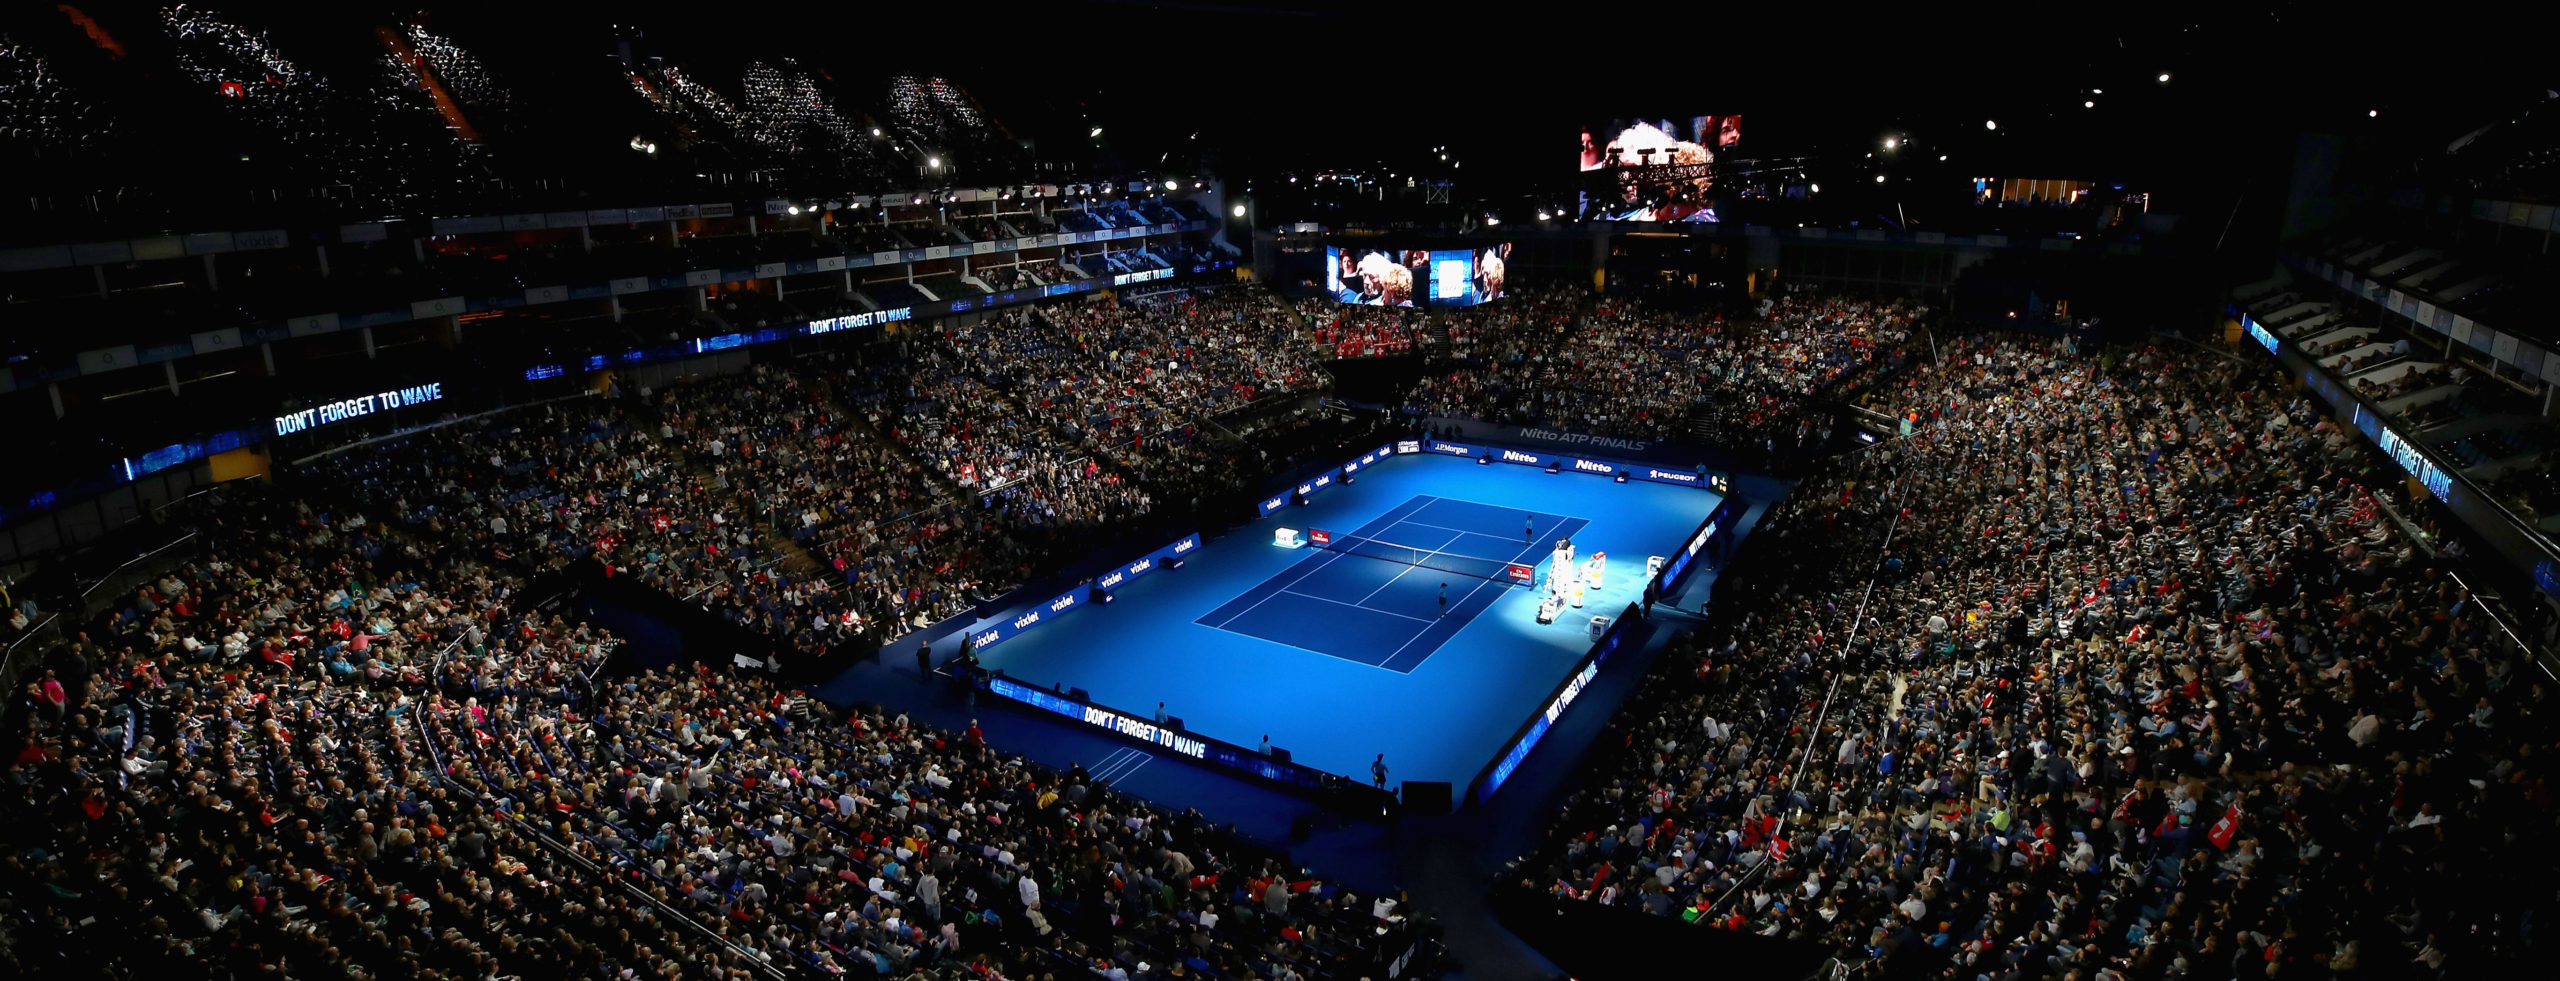 End of an era: Who will win the 2020 ATP Finals?